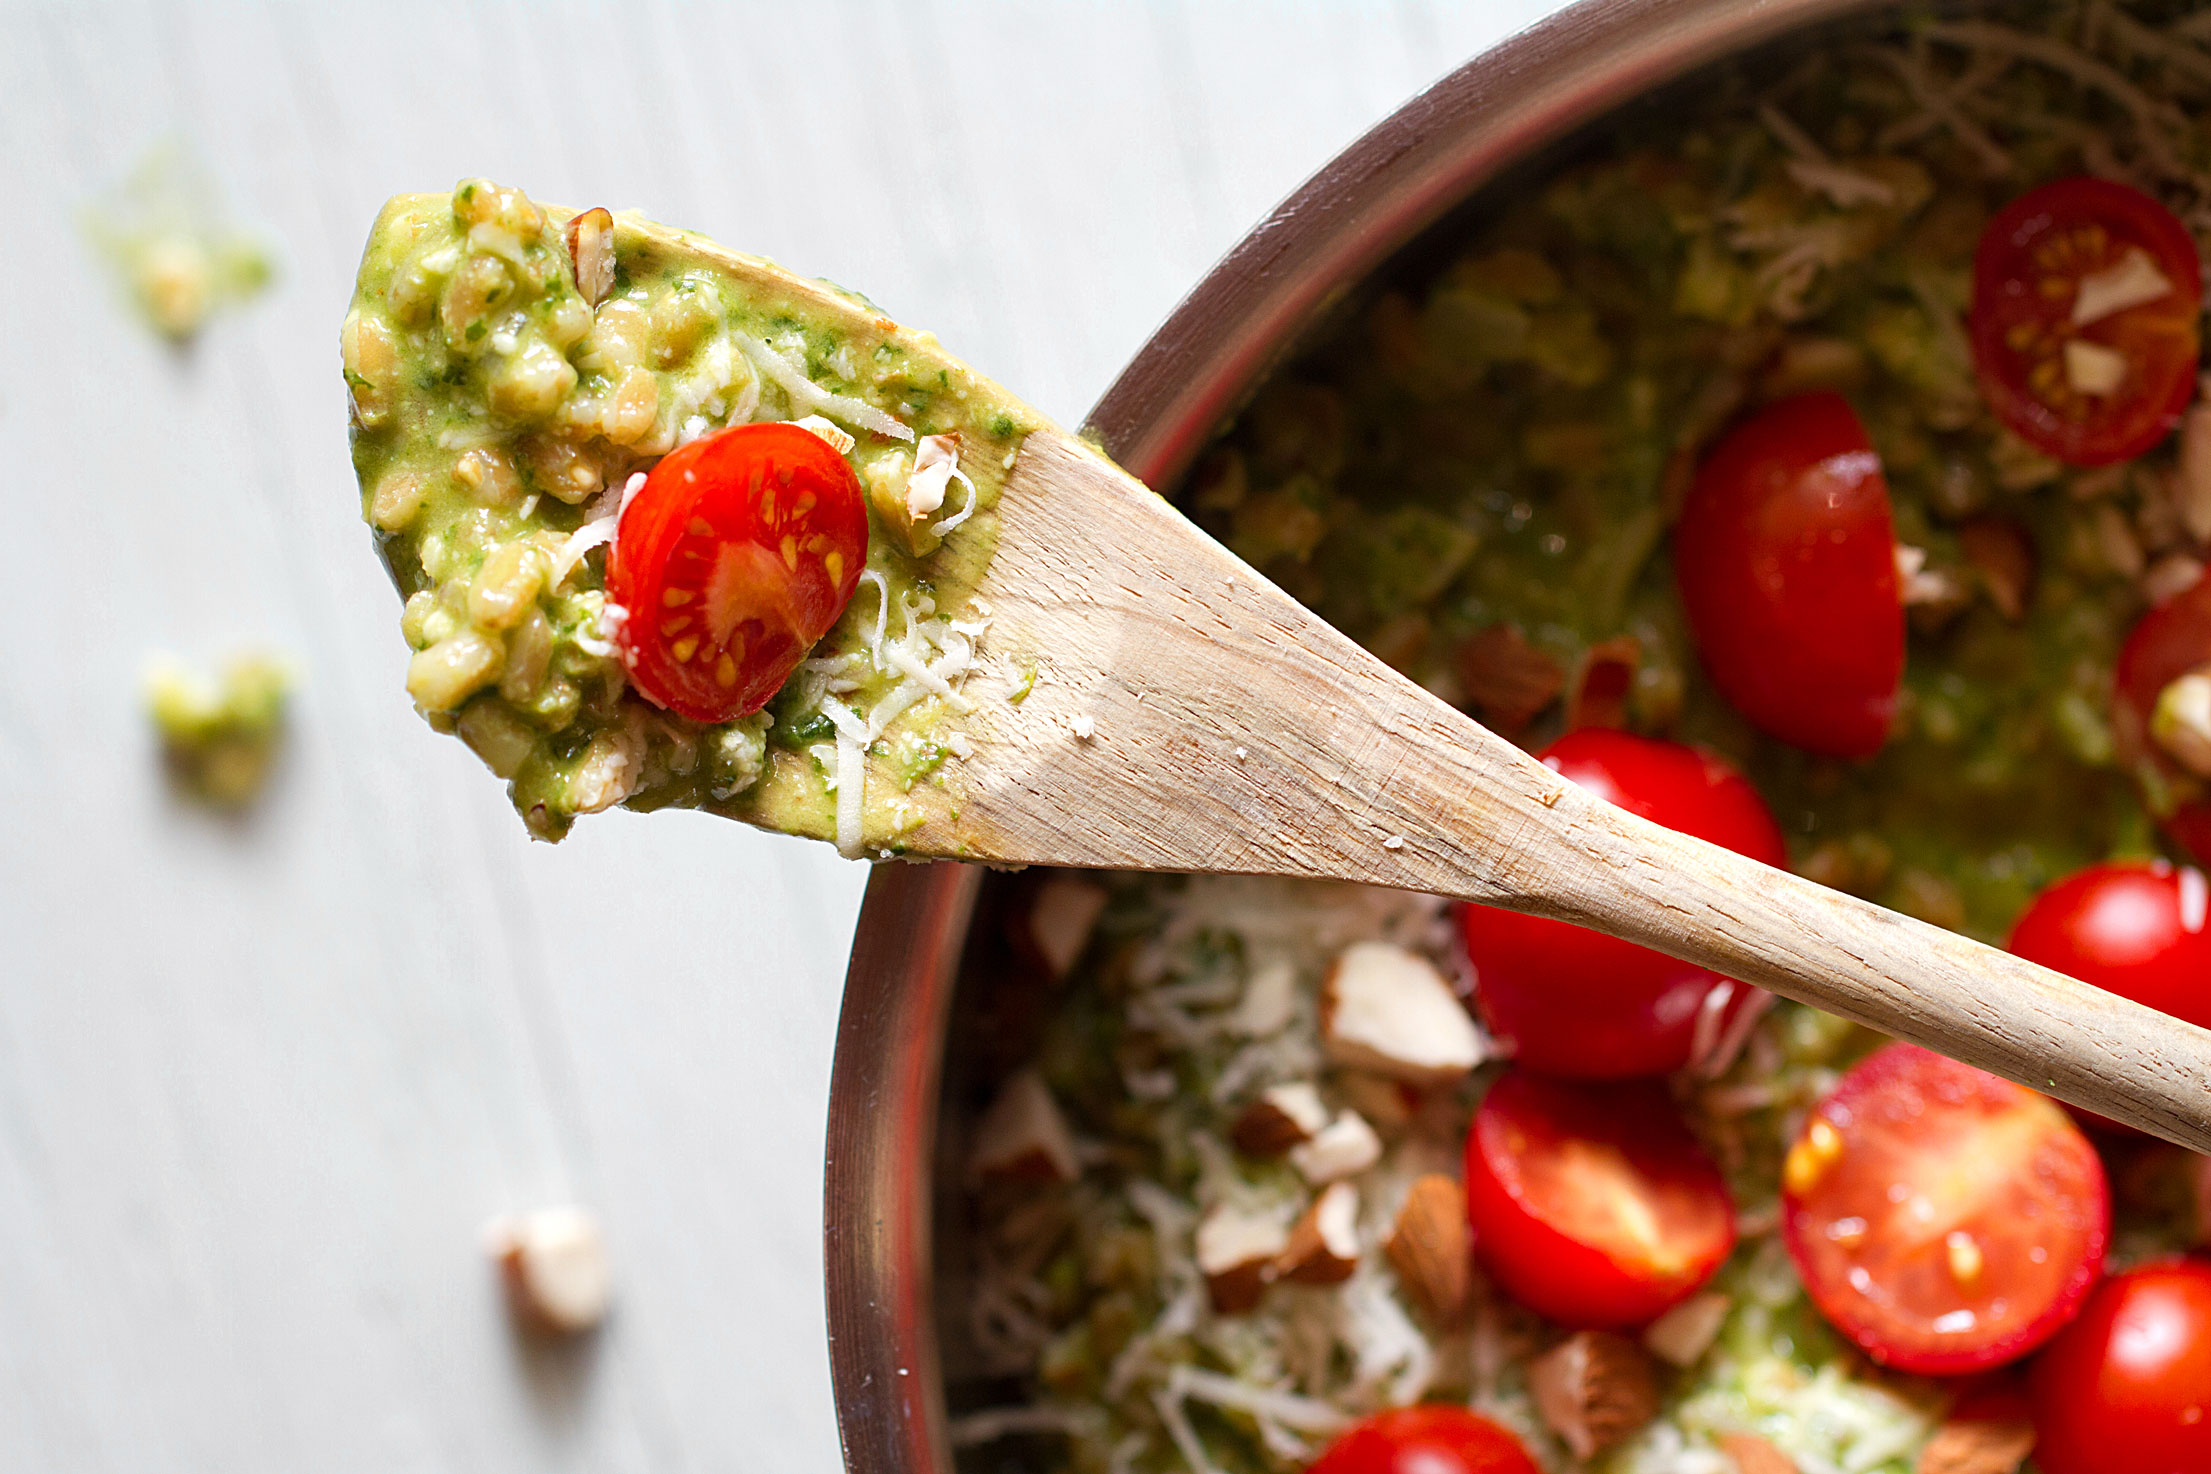 Farro Risotto with Spinach Pesto and Cherry Tomatoes